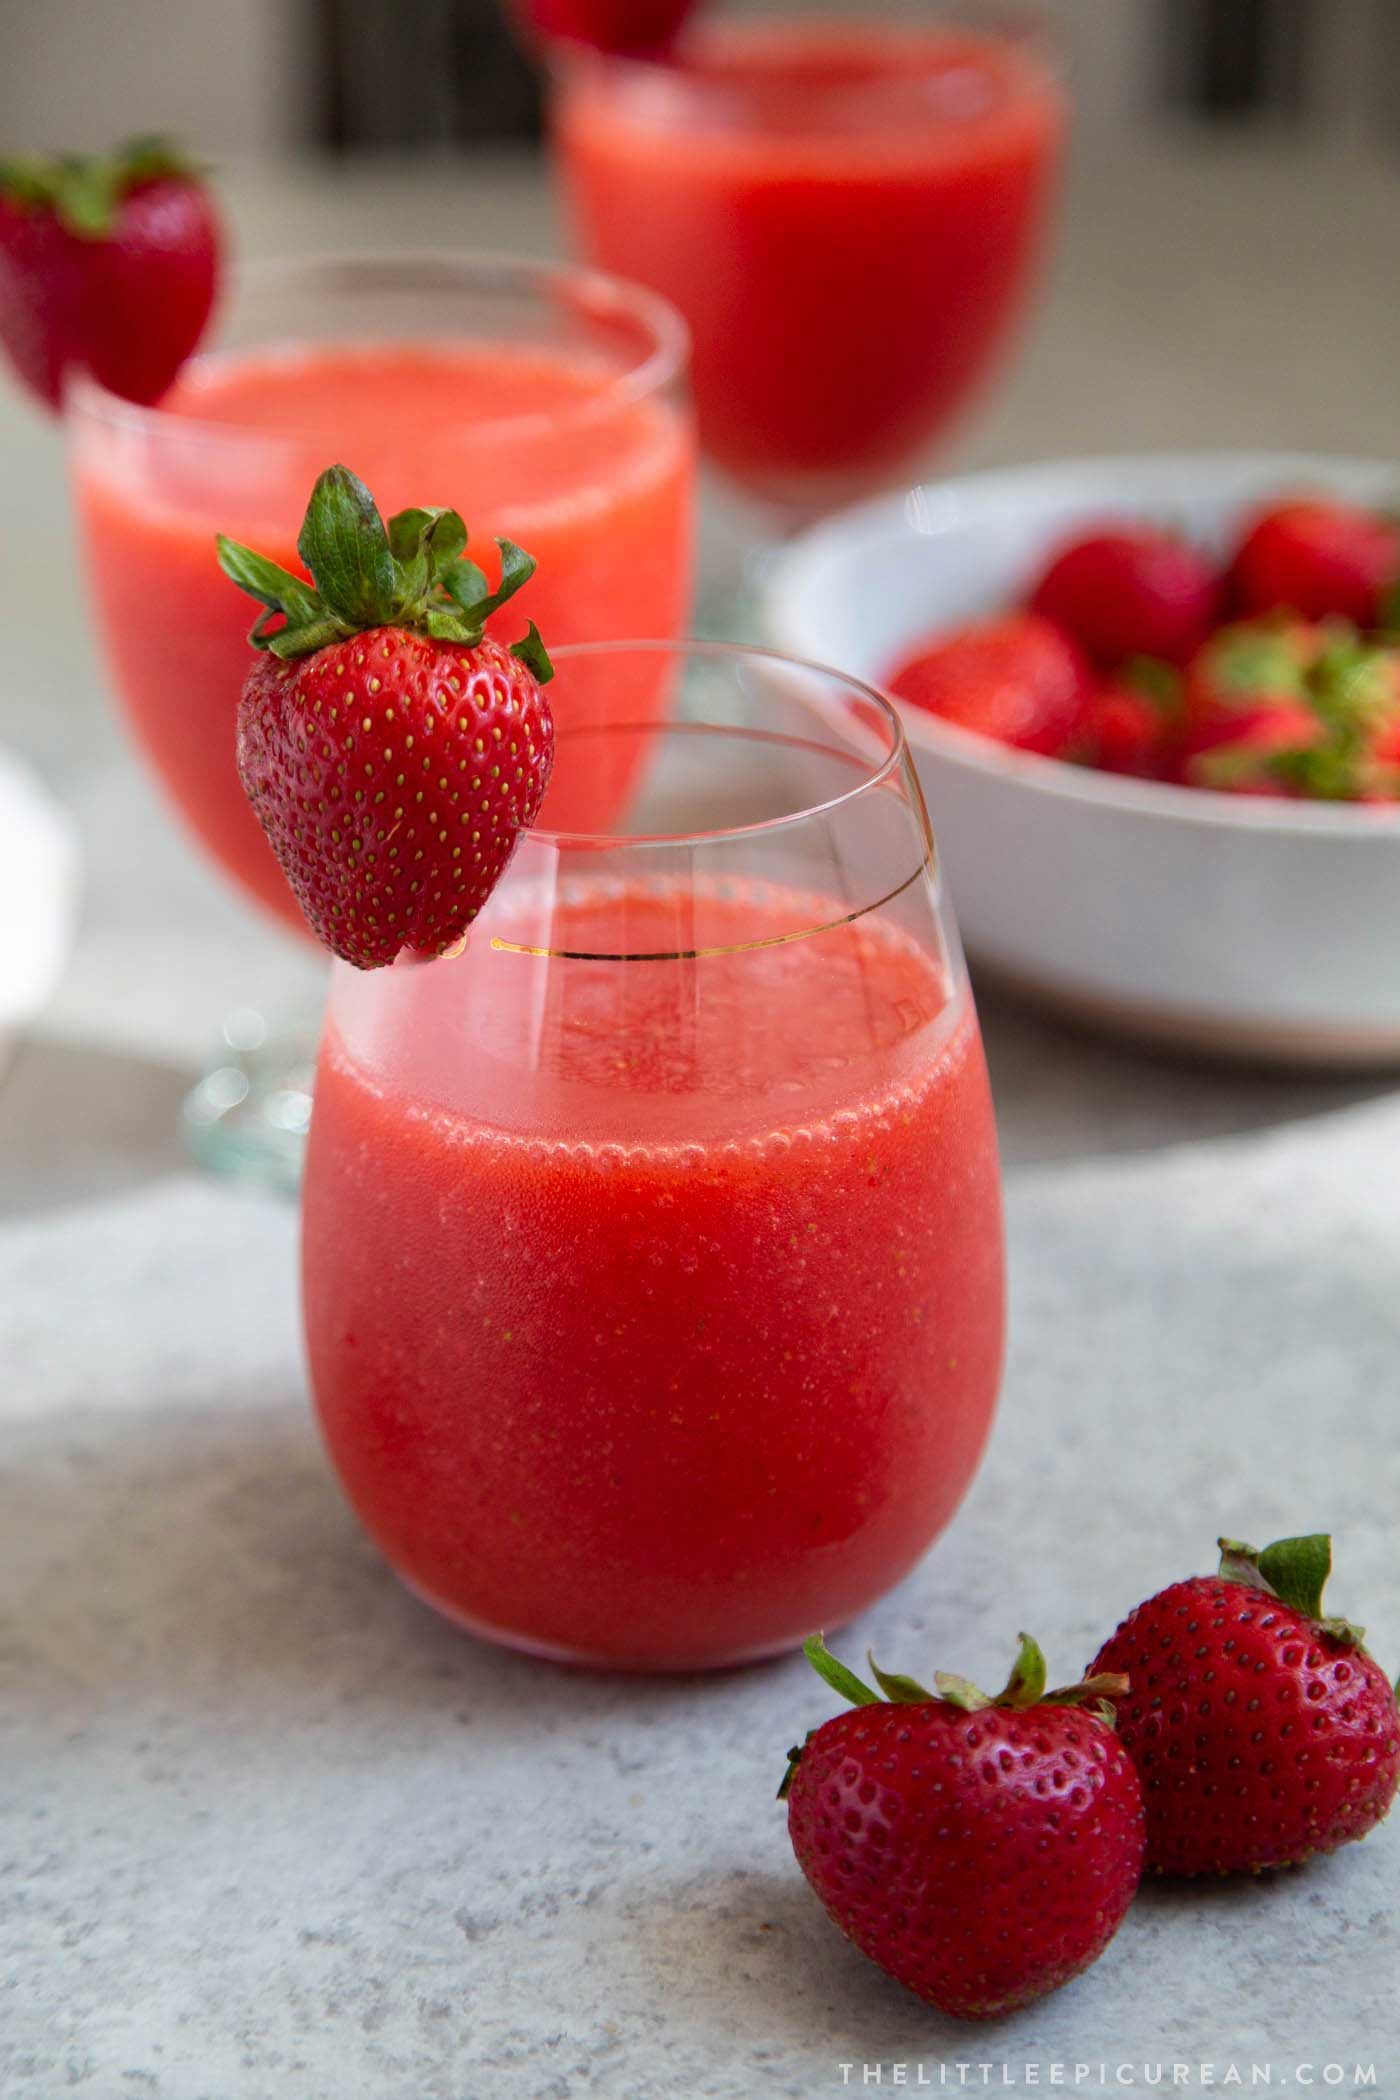 Frozen strawberry daiquiri made with frozen strawberries, light rum, lime juice, and simple syrup